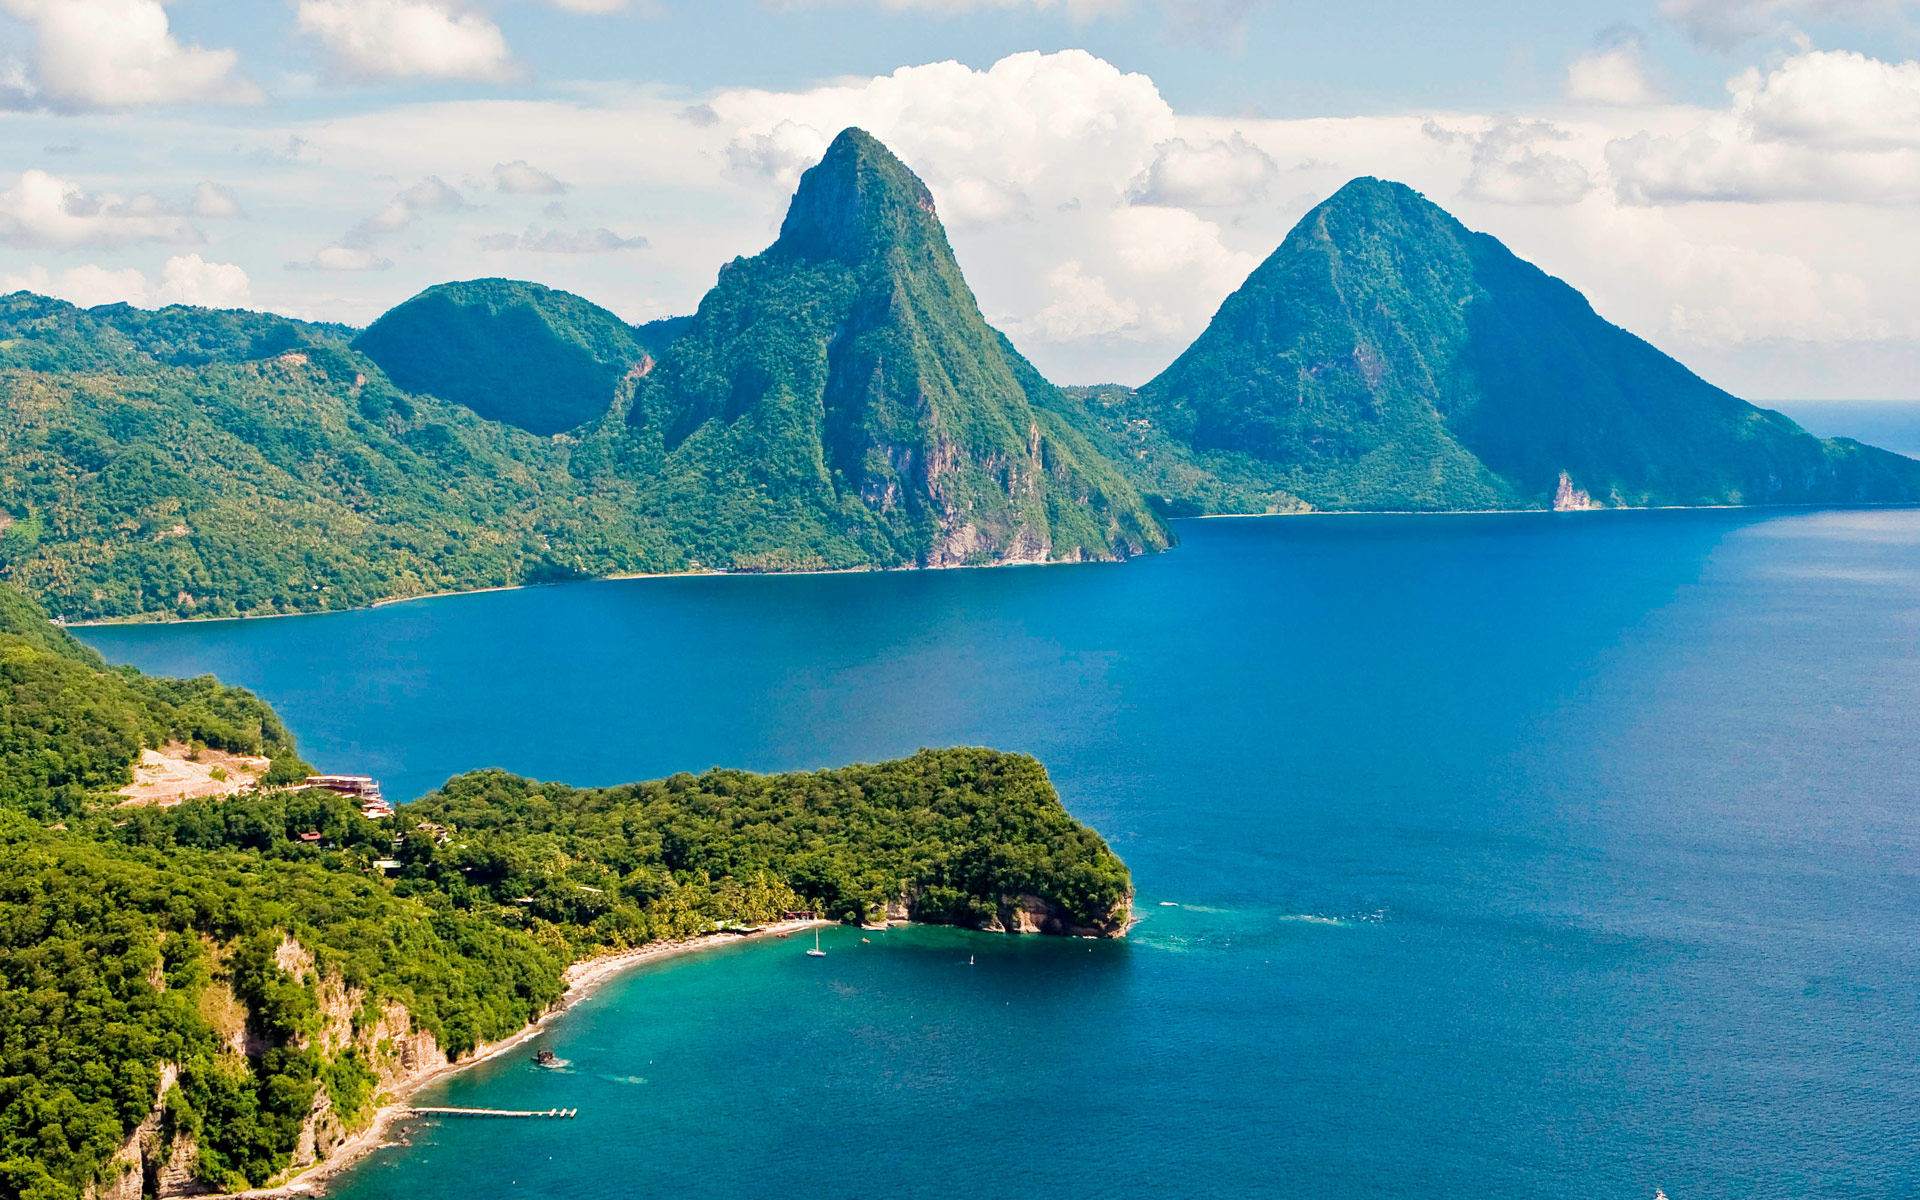 sea pictures of saint lucia in the caribbean saint vincent adas 1920x1200